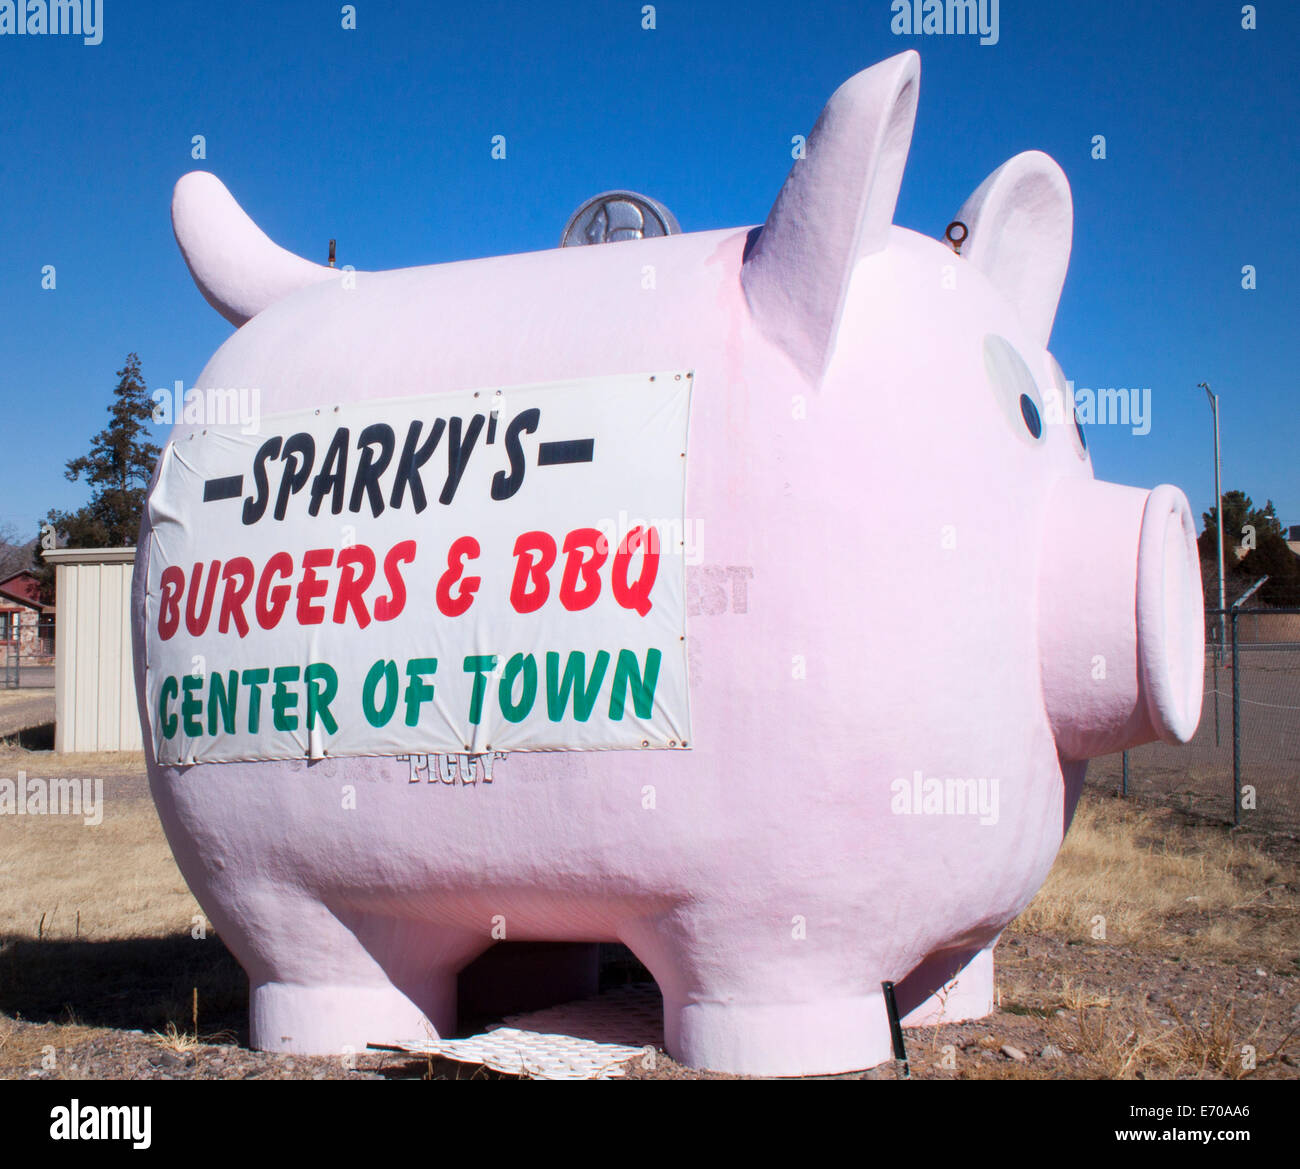 Giant Piggy Bank advertising a restaurant in Hatch New Mexico - Stock Image